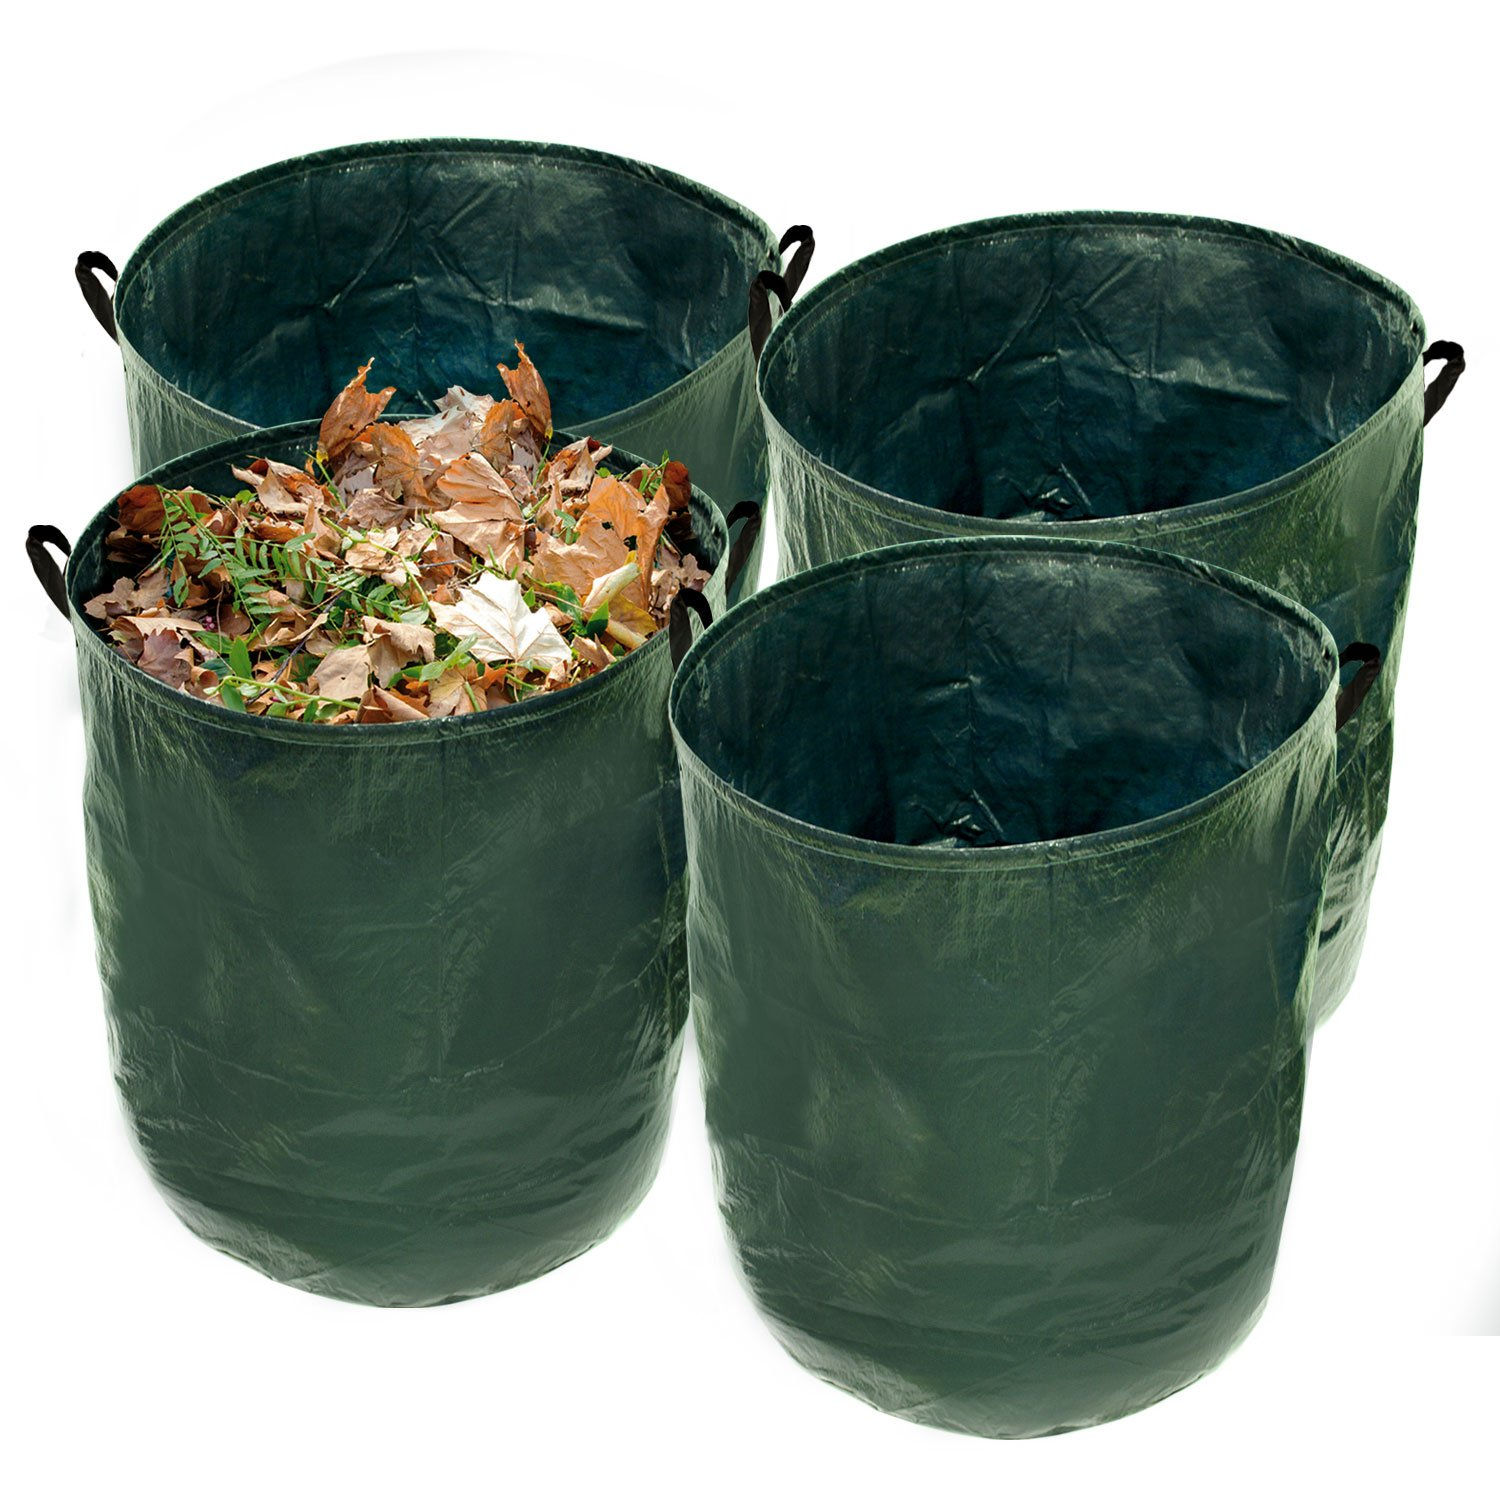 U.S. Garden Supply Durable 36 Gallon Reusable Garden Bags, 4 Pack - Yard Leaf Lawn Grass Waste Trash Container - Heavy Duty Collapsible Basket with Portable Handles by U.S. Garden Supply